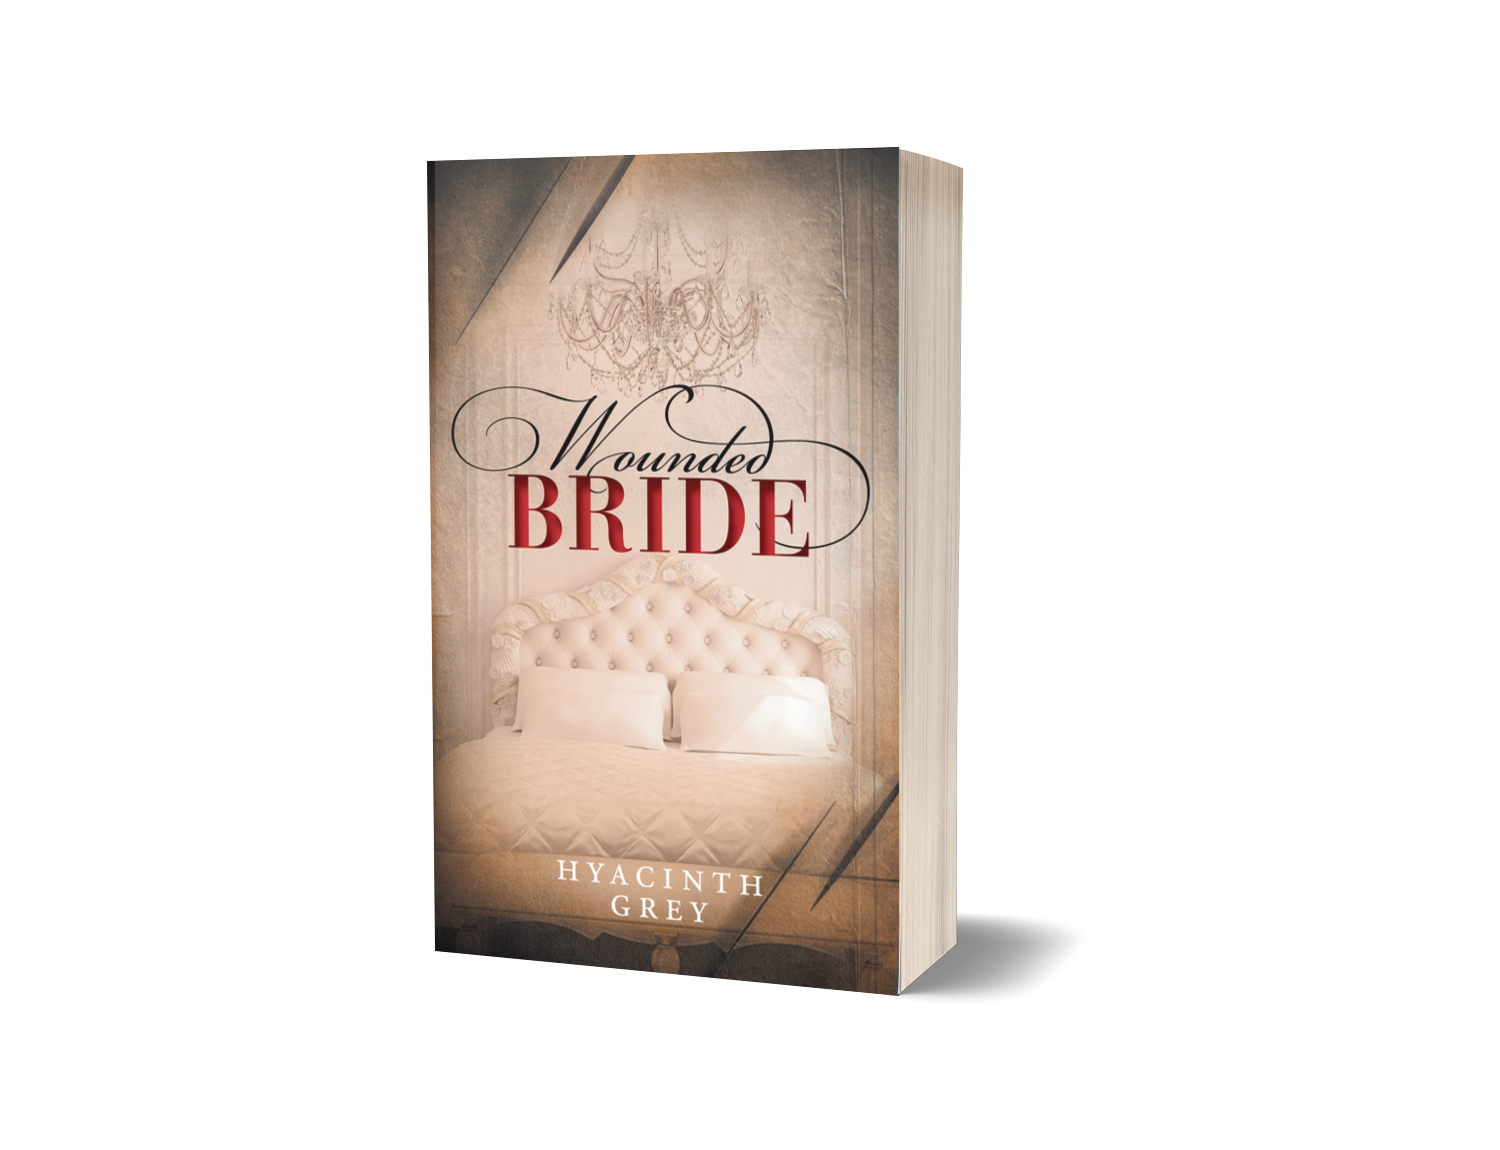 Softcover/Paperback 3D Mockup cover image Wounded Bride by Hyacinth Grey - clicking this link will open the Wounded Bride page in a new tab